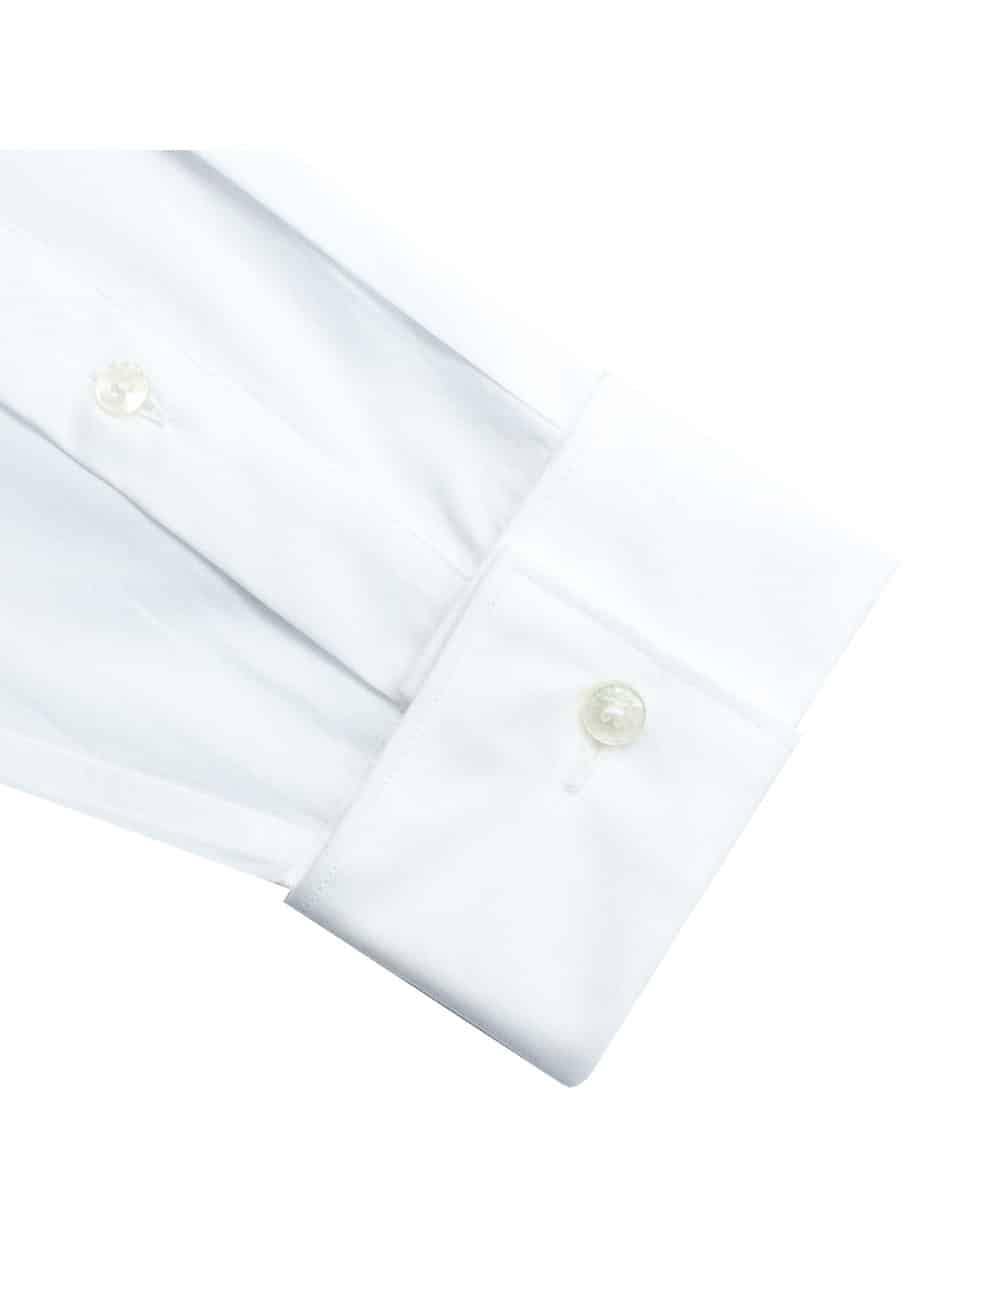 Modern Fit 100% Premium Cotton Changeable Mandarin Collar Solid White Long Sleeve Double Cuff Tuxedo Shirt with Pleated Front Bib and Button Studs, Long Lasting White Finishing MF48DT2.NOS